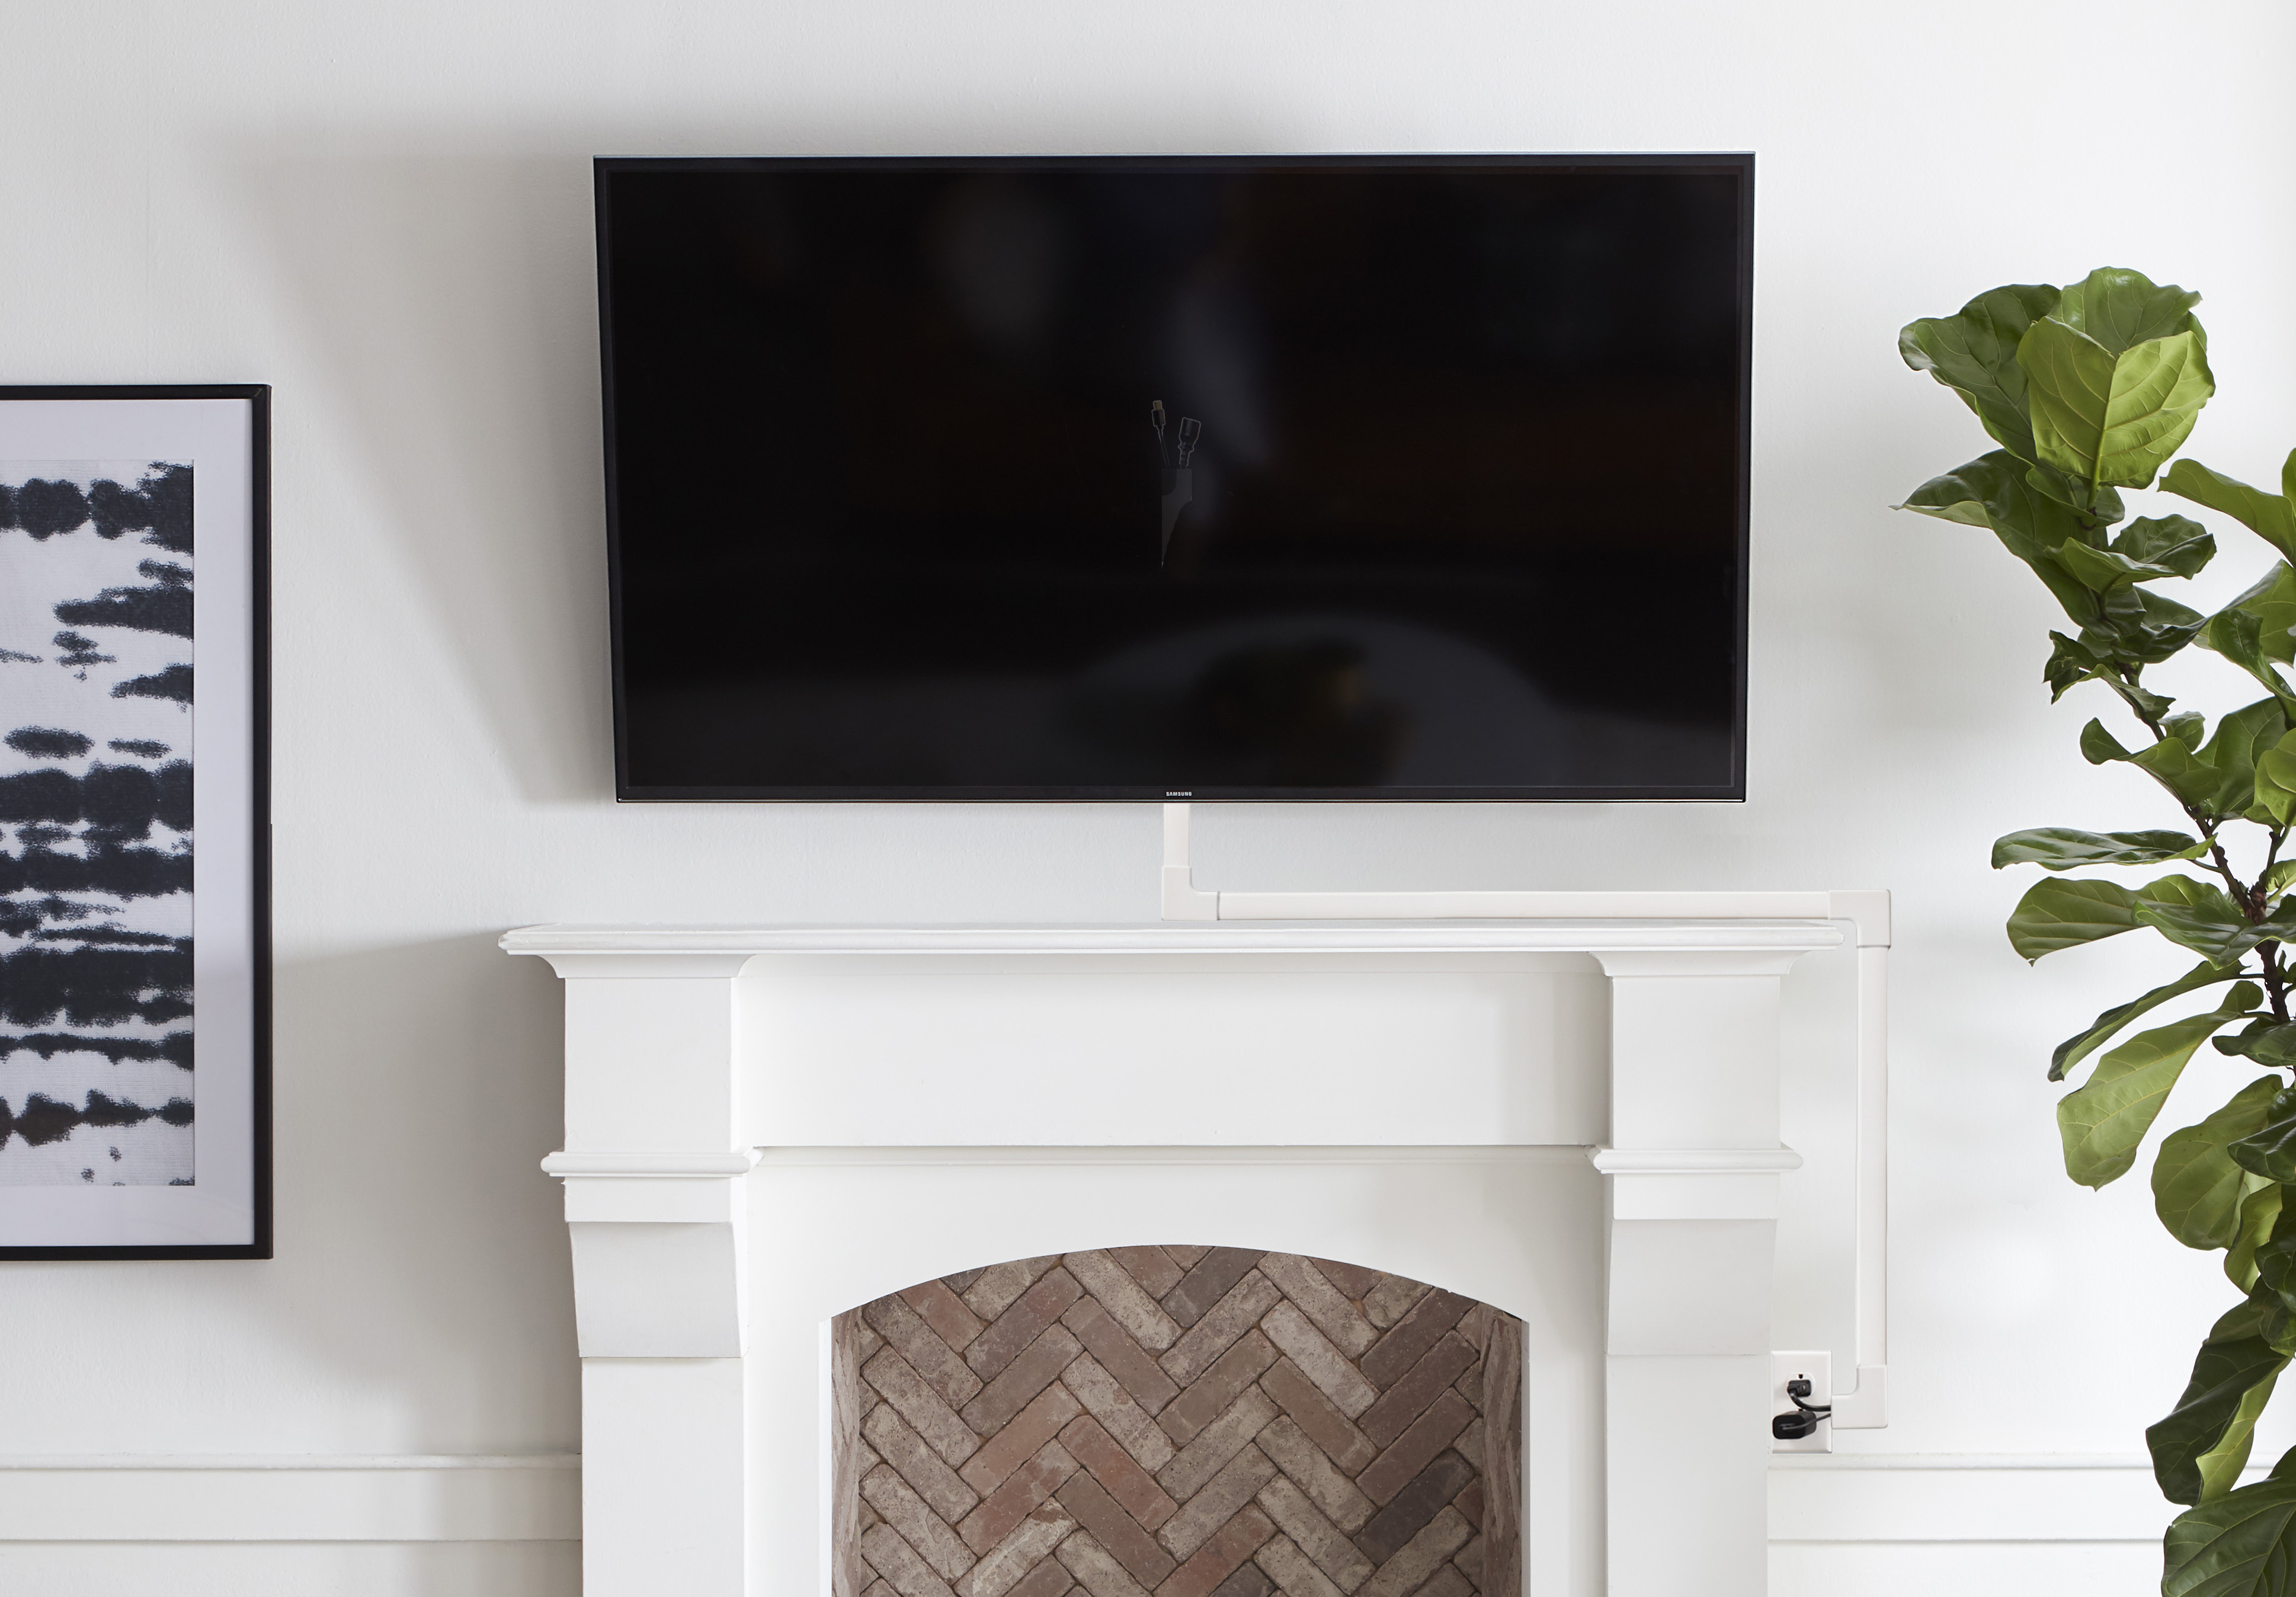 Television Over Fireplace Design Mounting A Tv Over A Fireplace How Does It Work Echogear